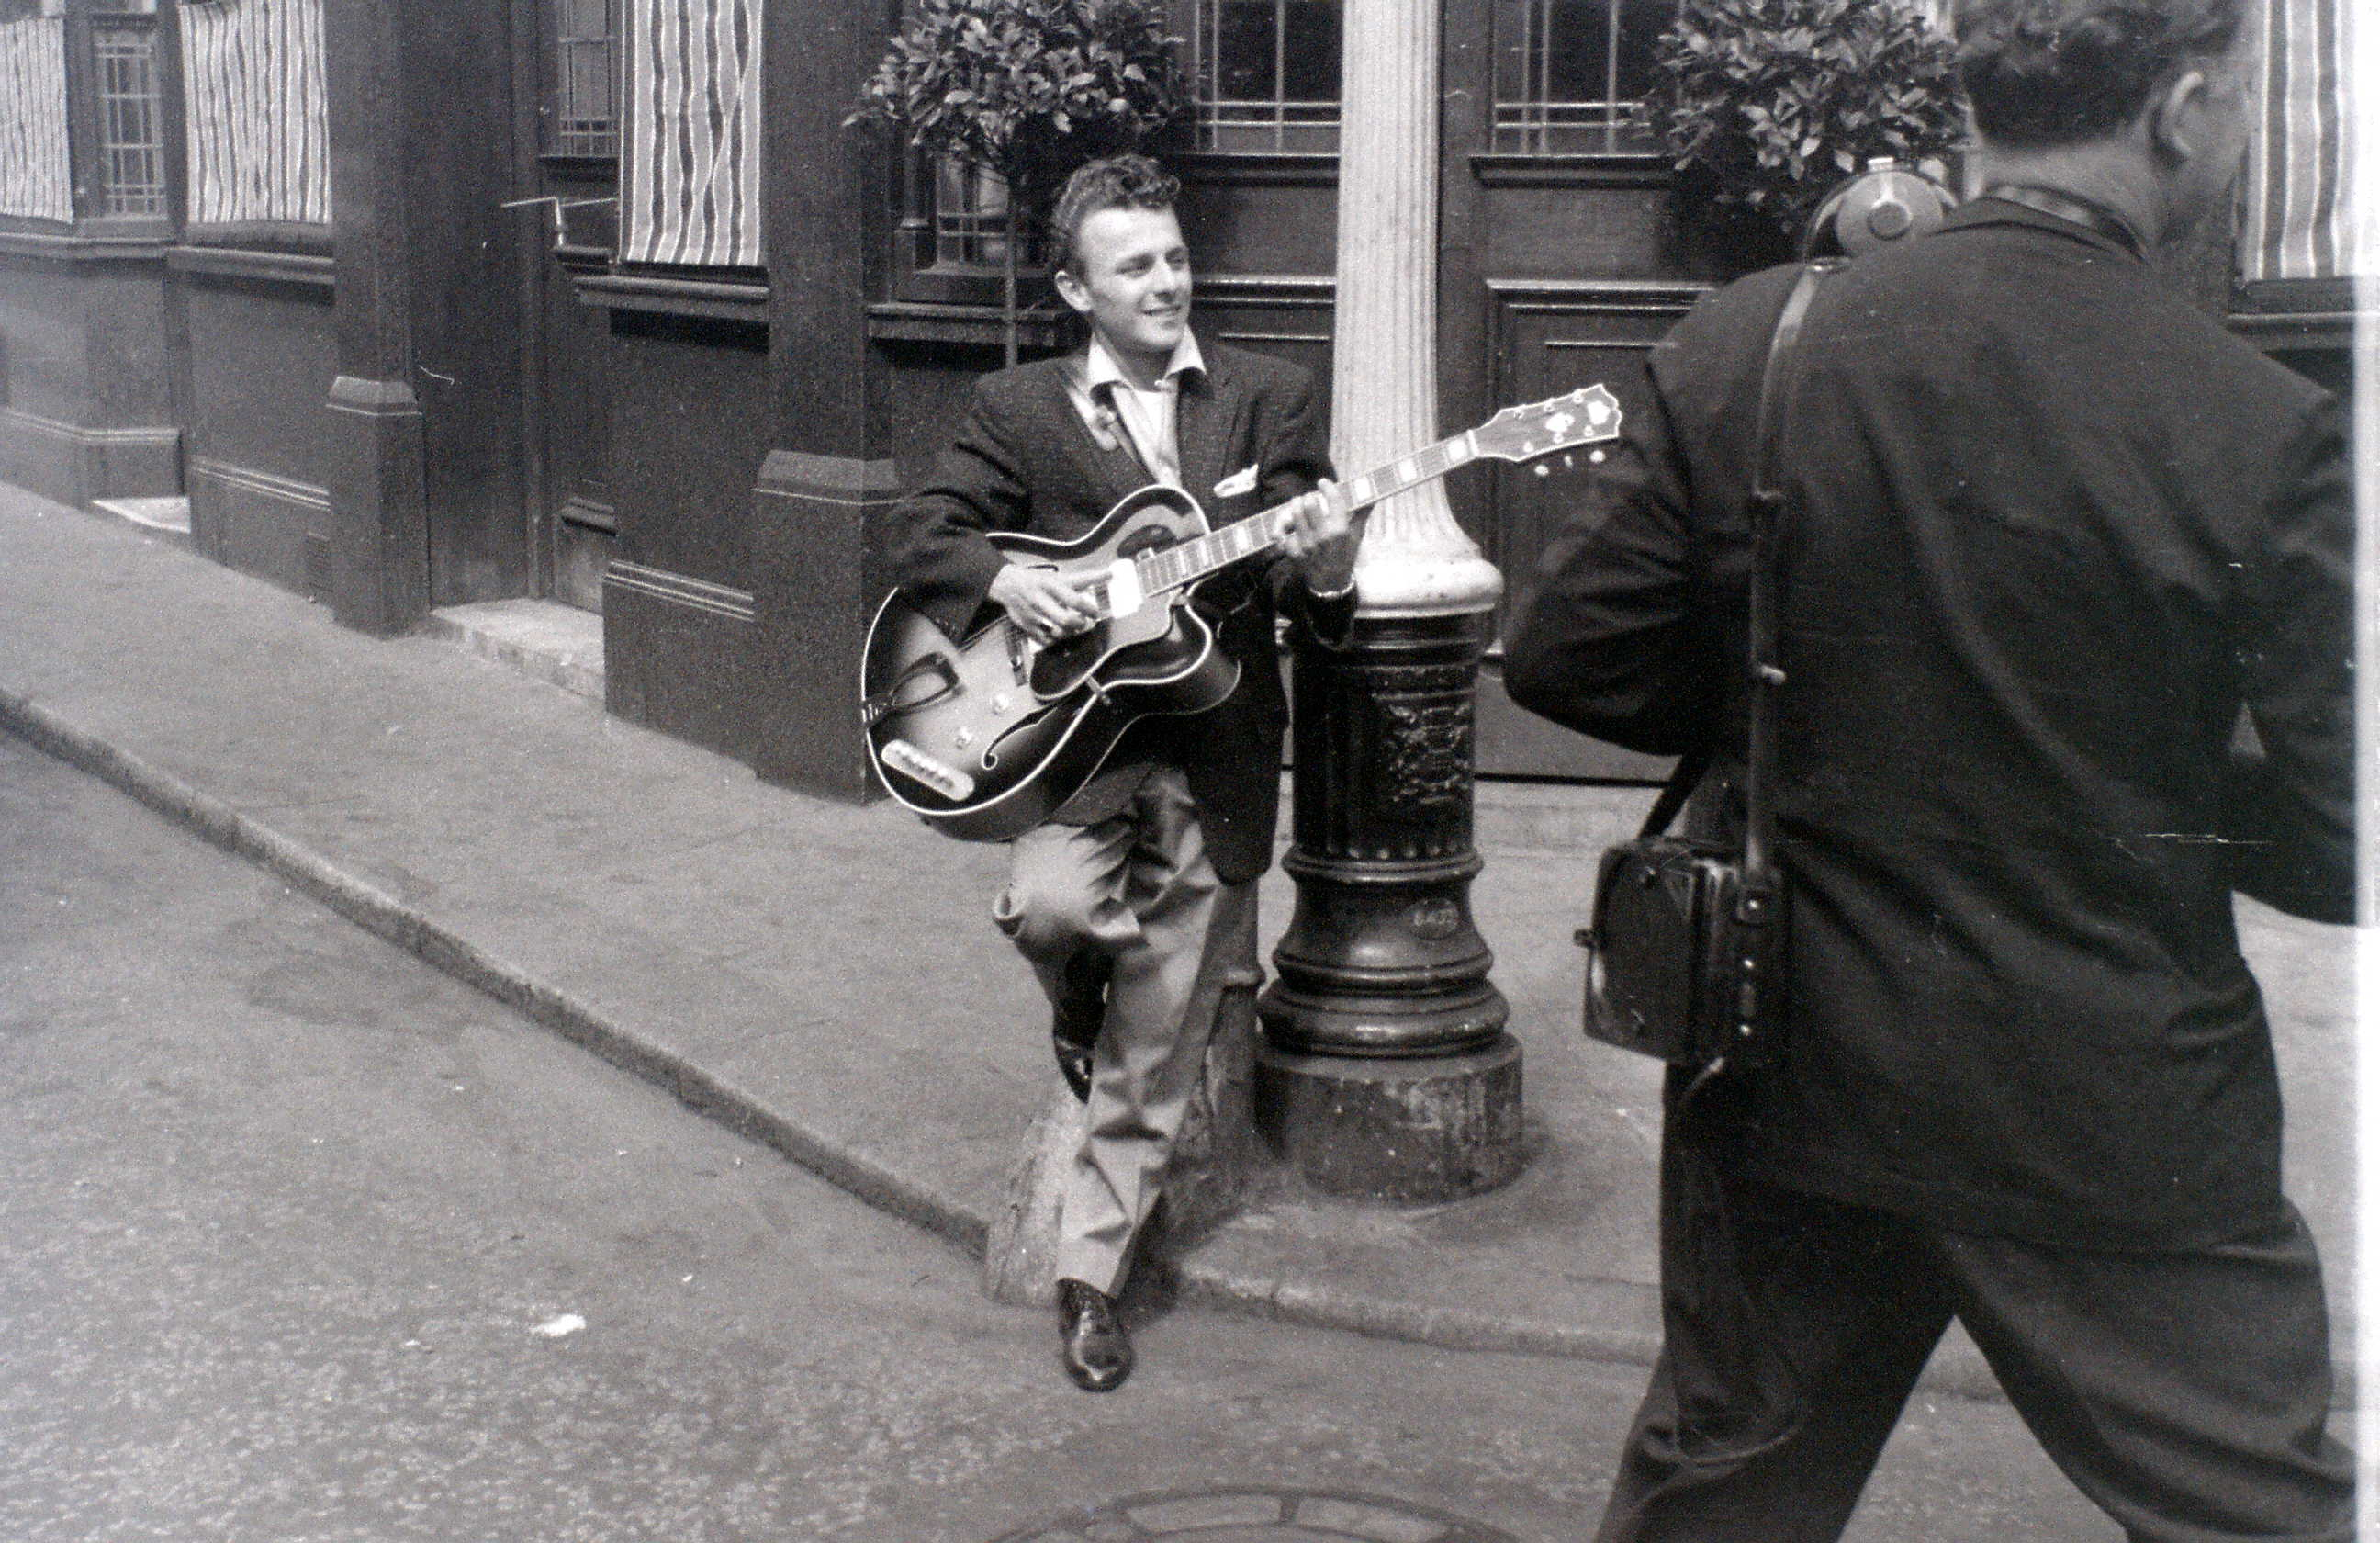 Charlie Gracie posing for promotional photos in London, c.5 August 1957